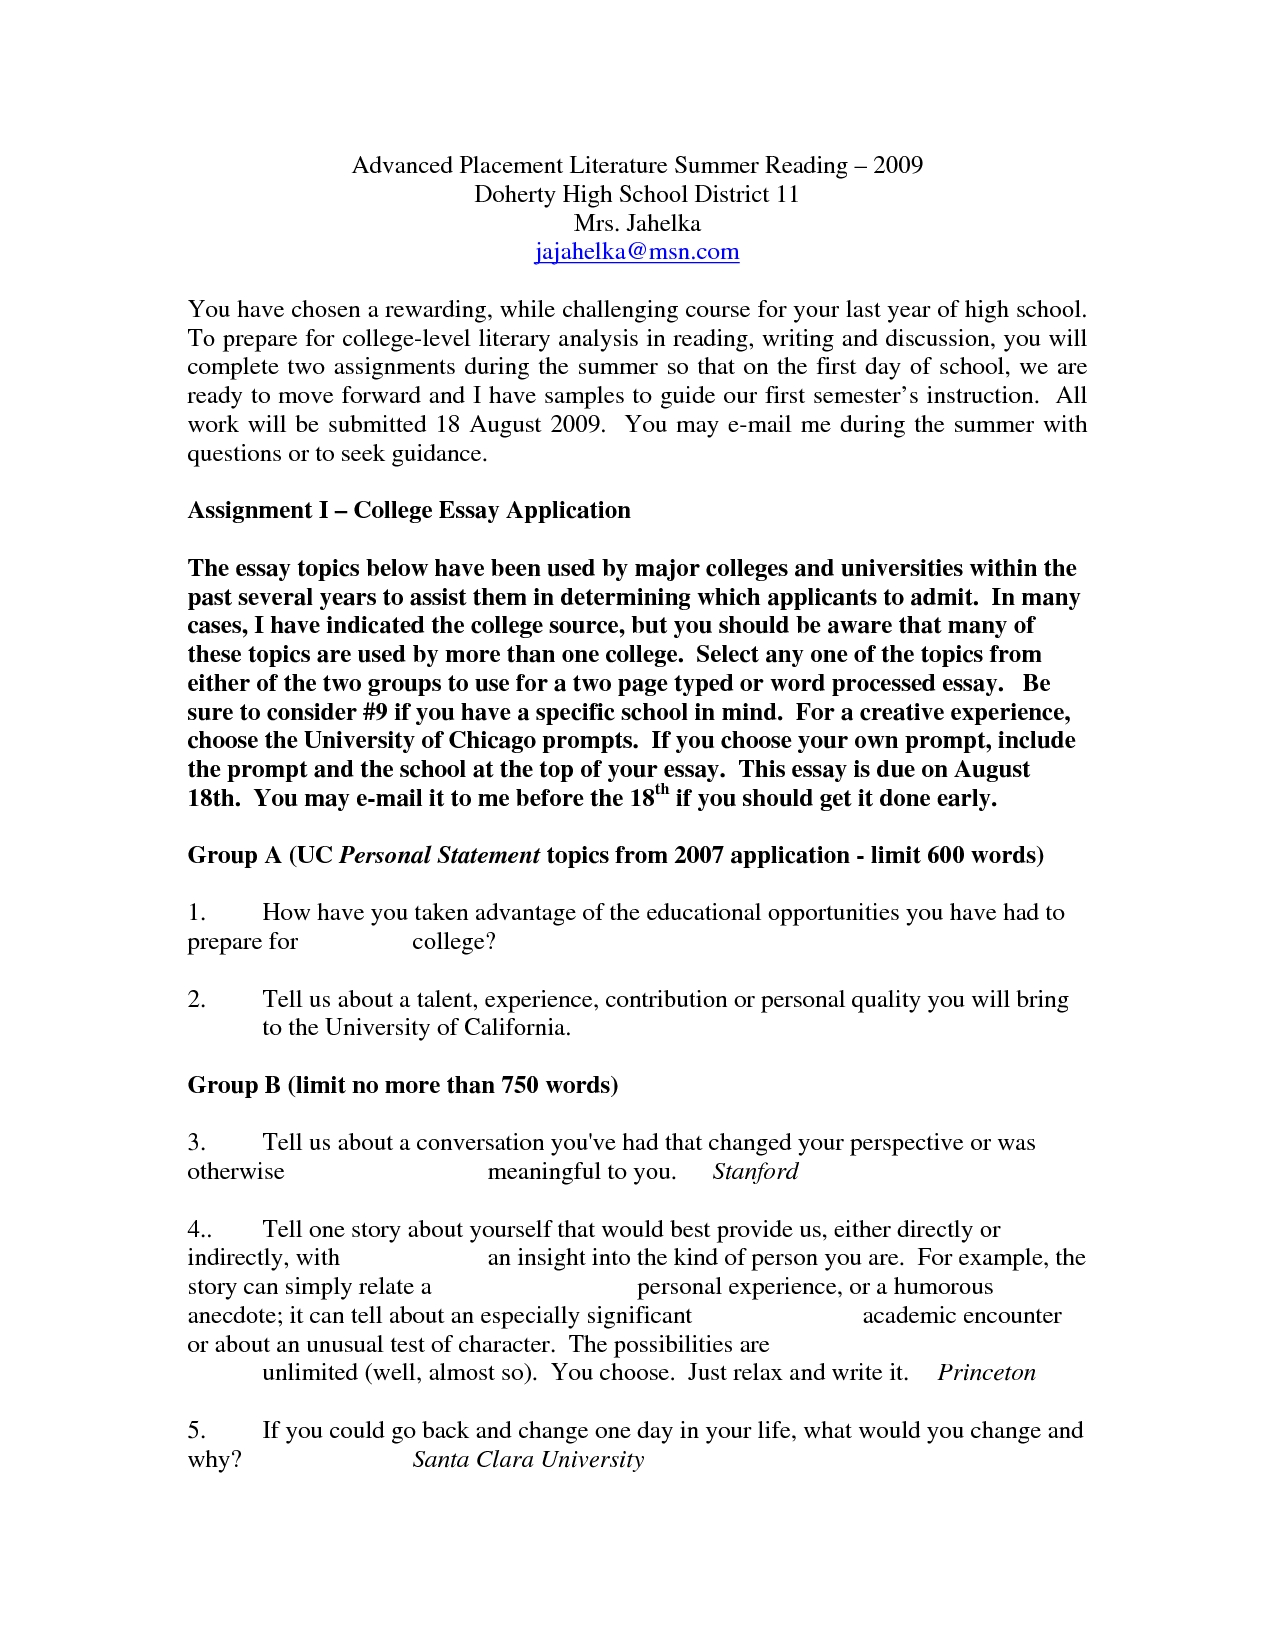 ideas of how to write good college admissions essay admission   ideas of how to write good college admissions essay admission with best  humorous essays for middle school conclusion an